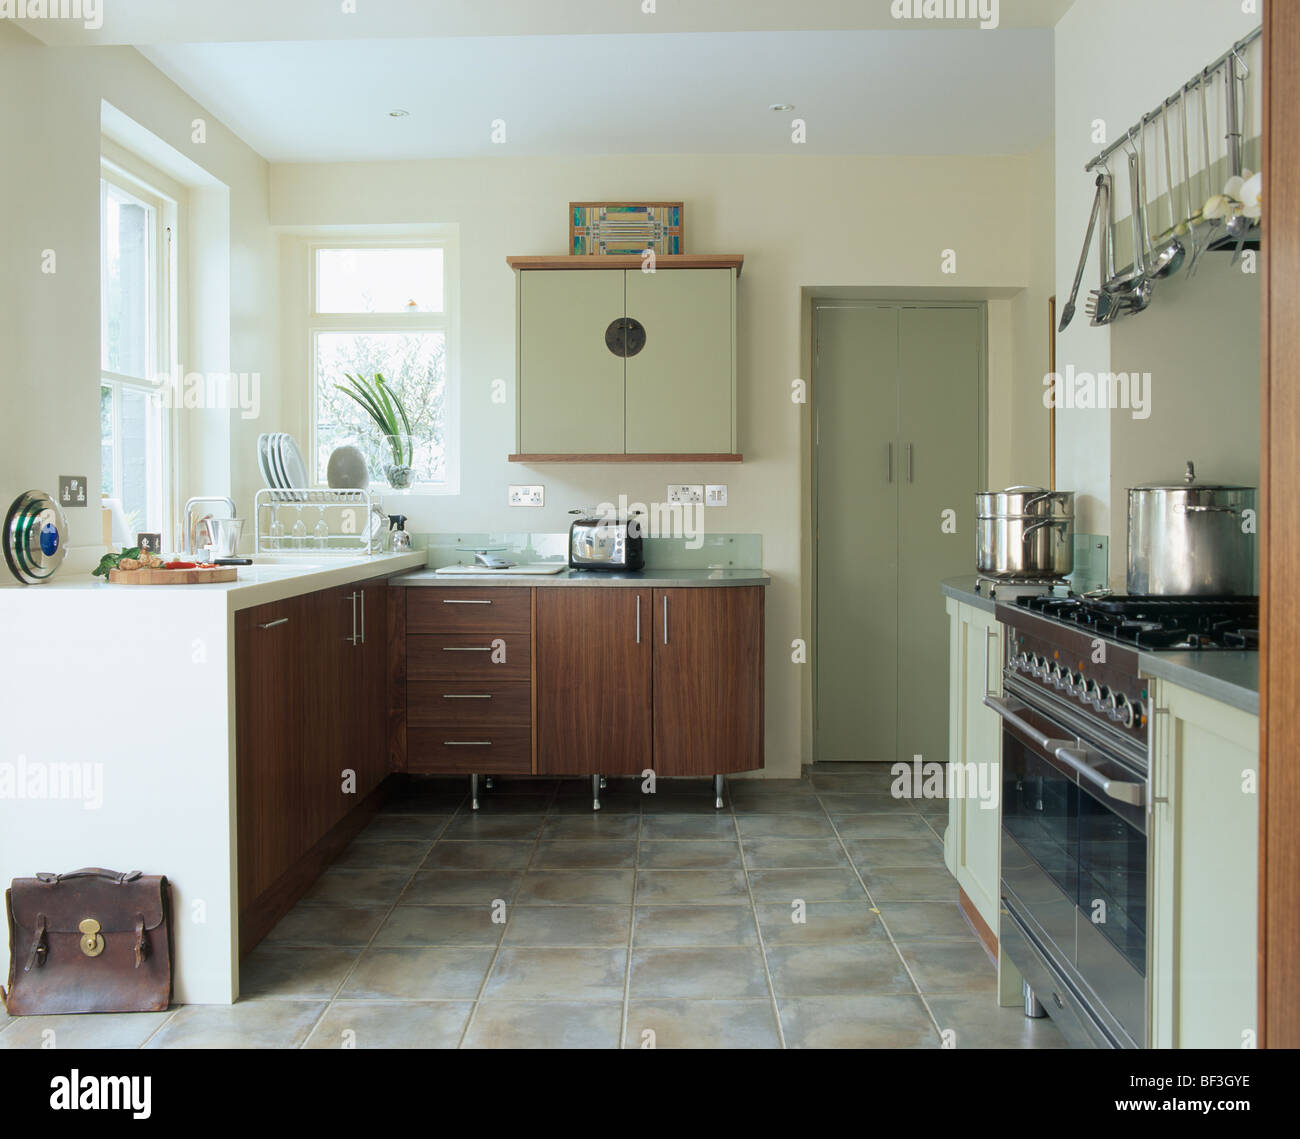 Modern kitchen with dark wood units and pale green wall cupboard and slate flooring